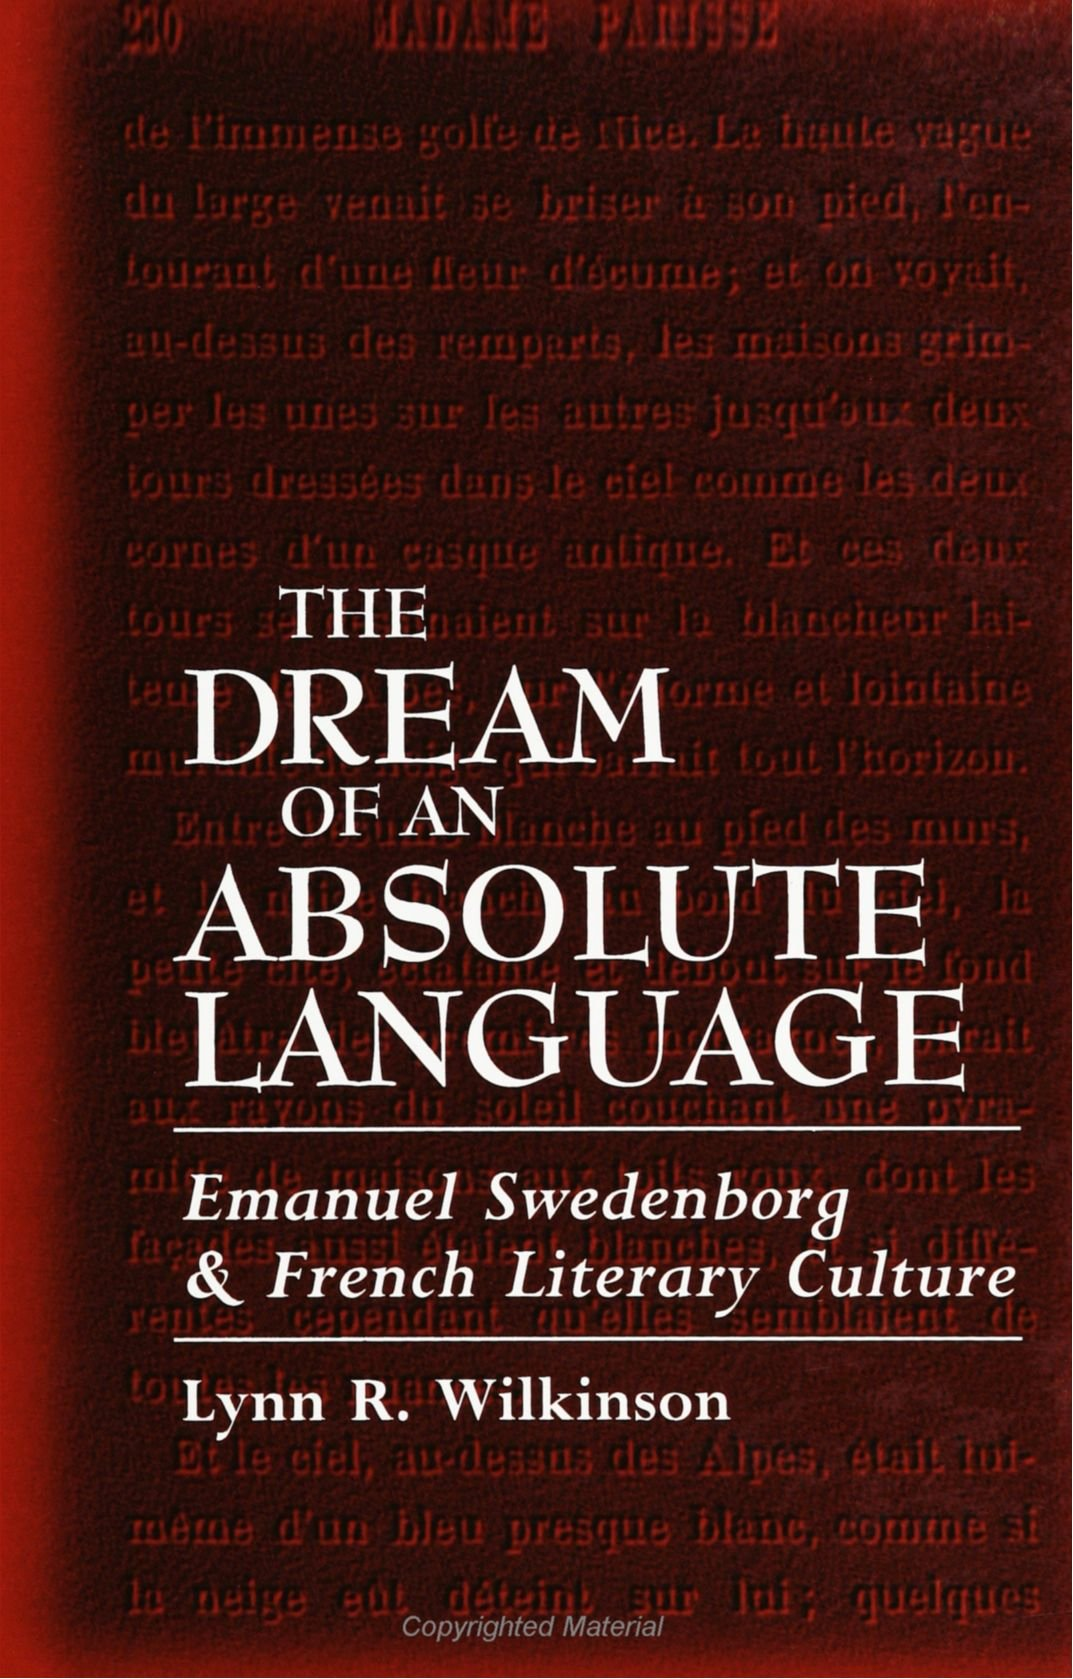 The Dream of an Absolute Language: Emanuel Swedenborg and French Literary Culture by Brand: State University of New York Press